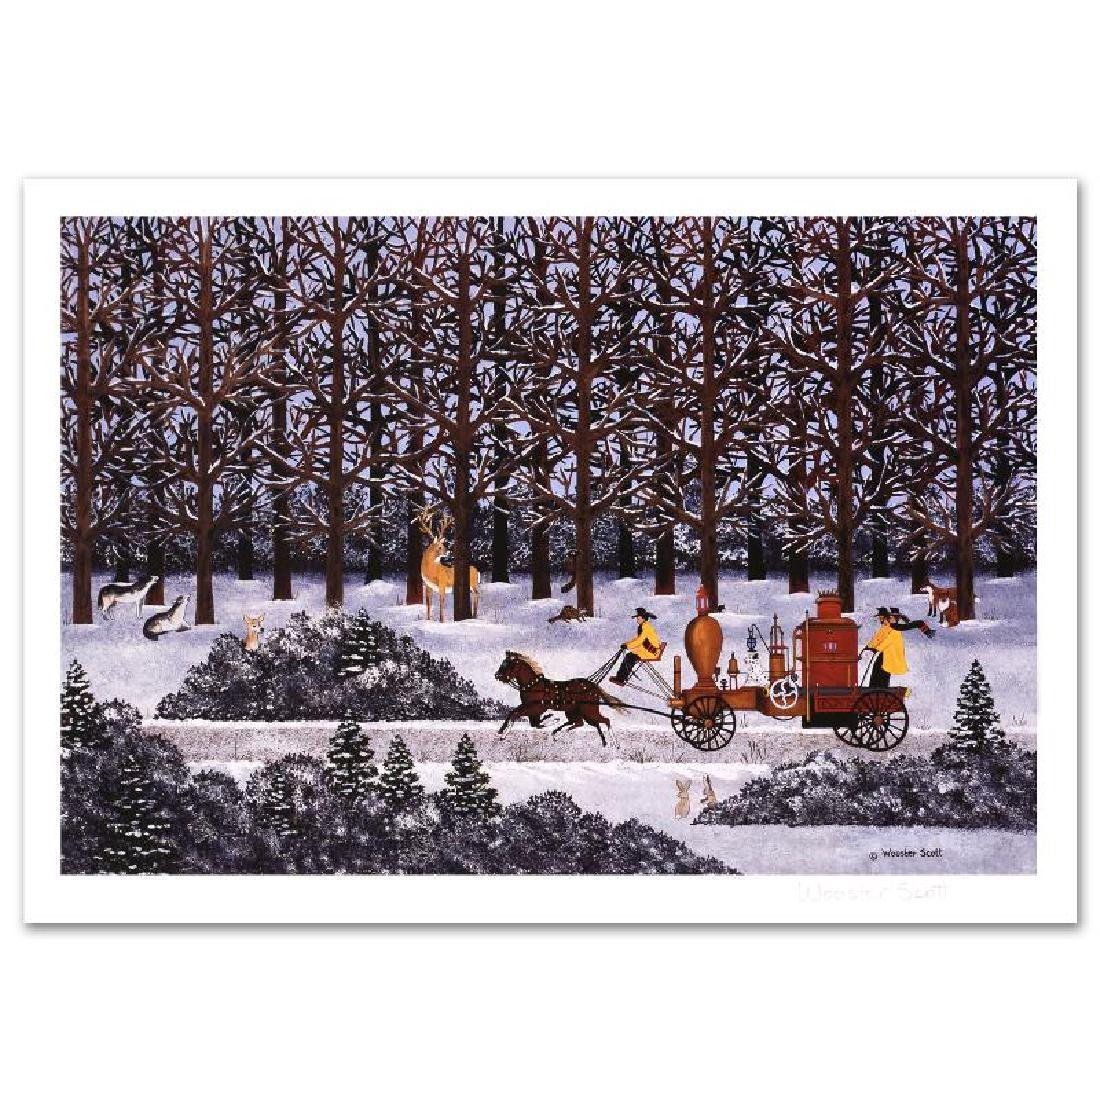 Dashing Through the Snow Limited Edition Lithograph by